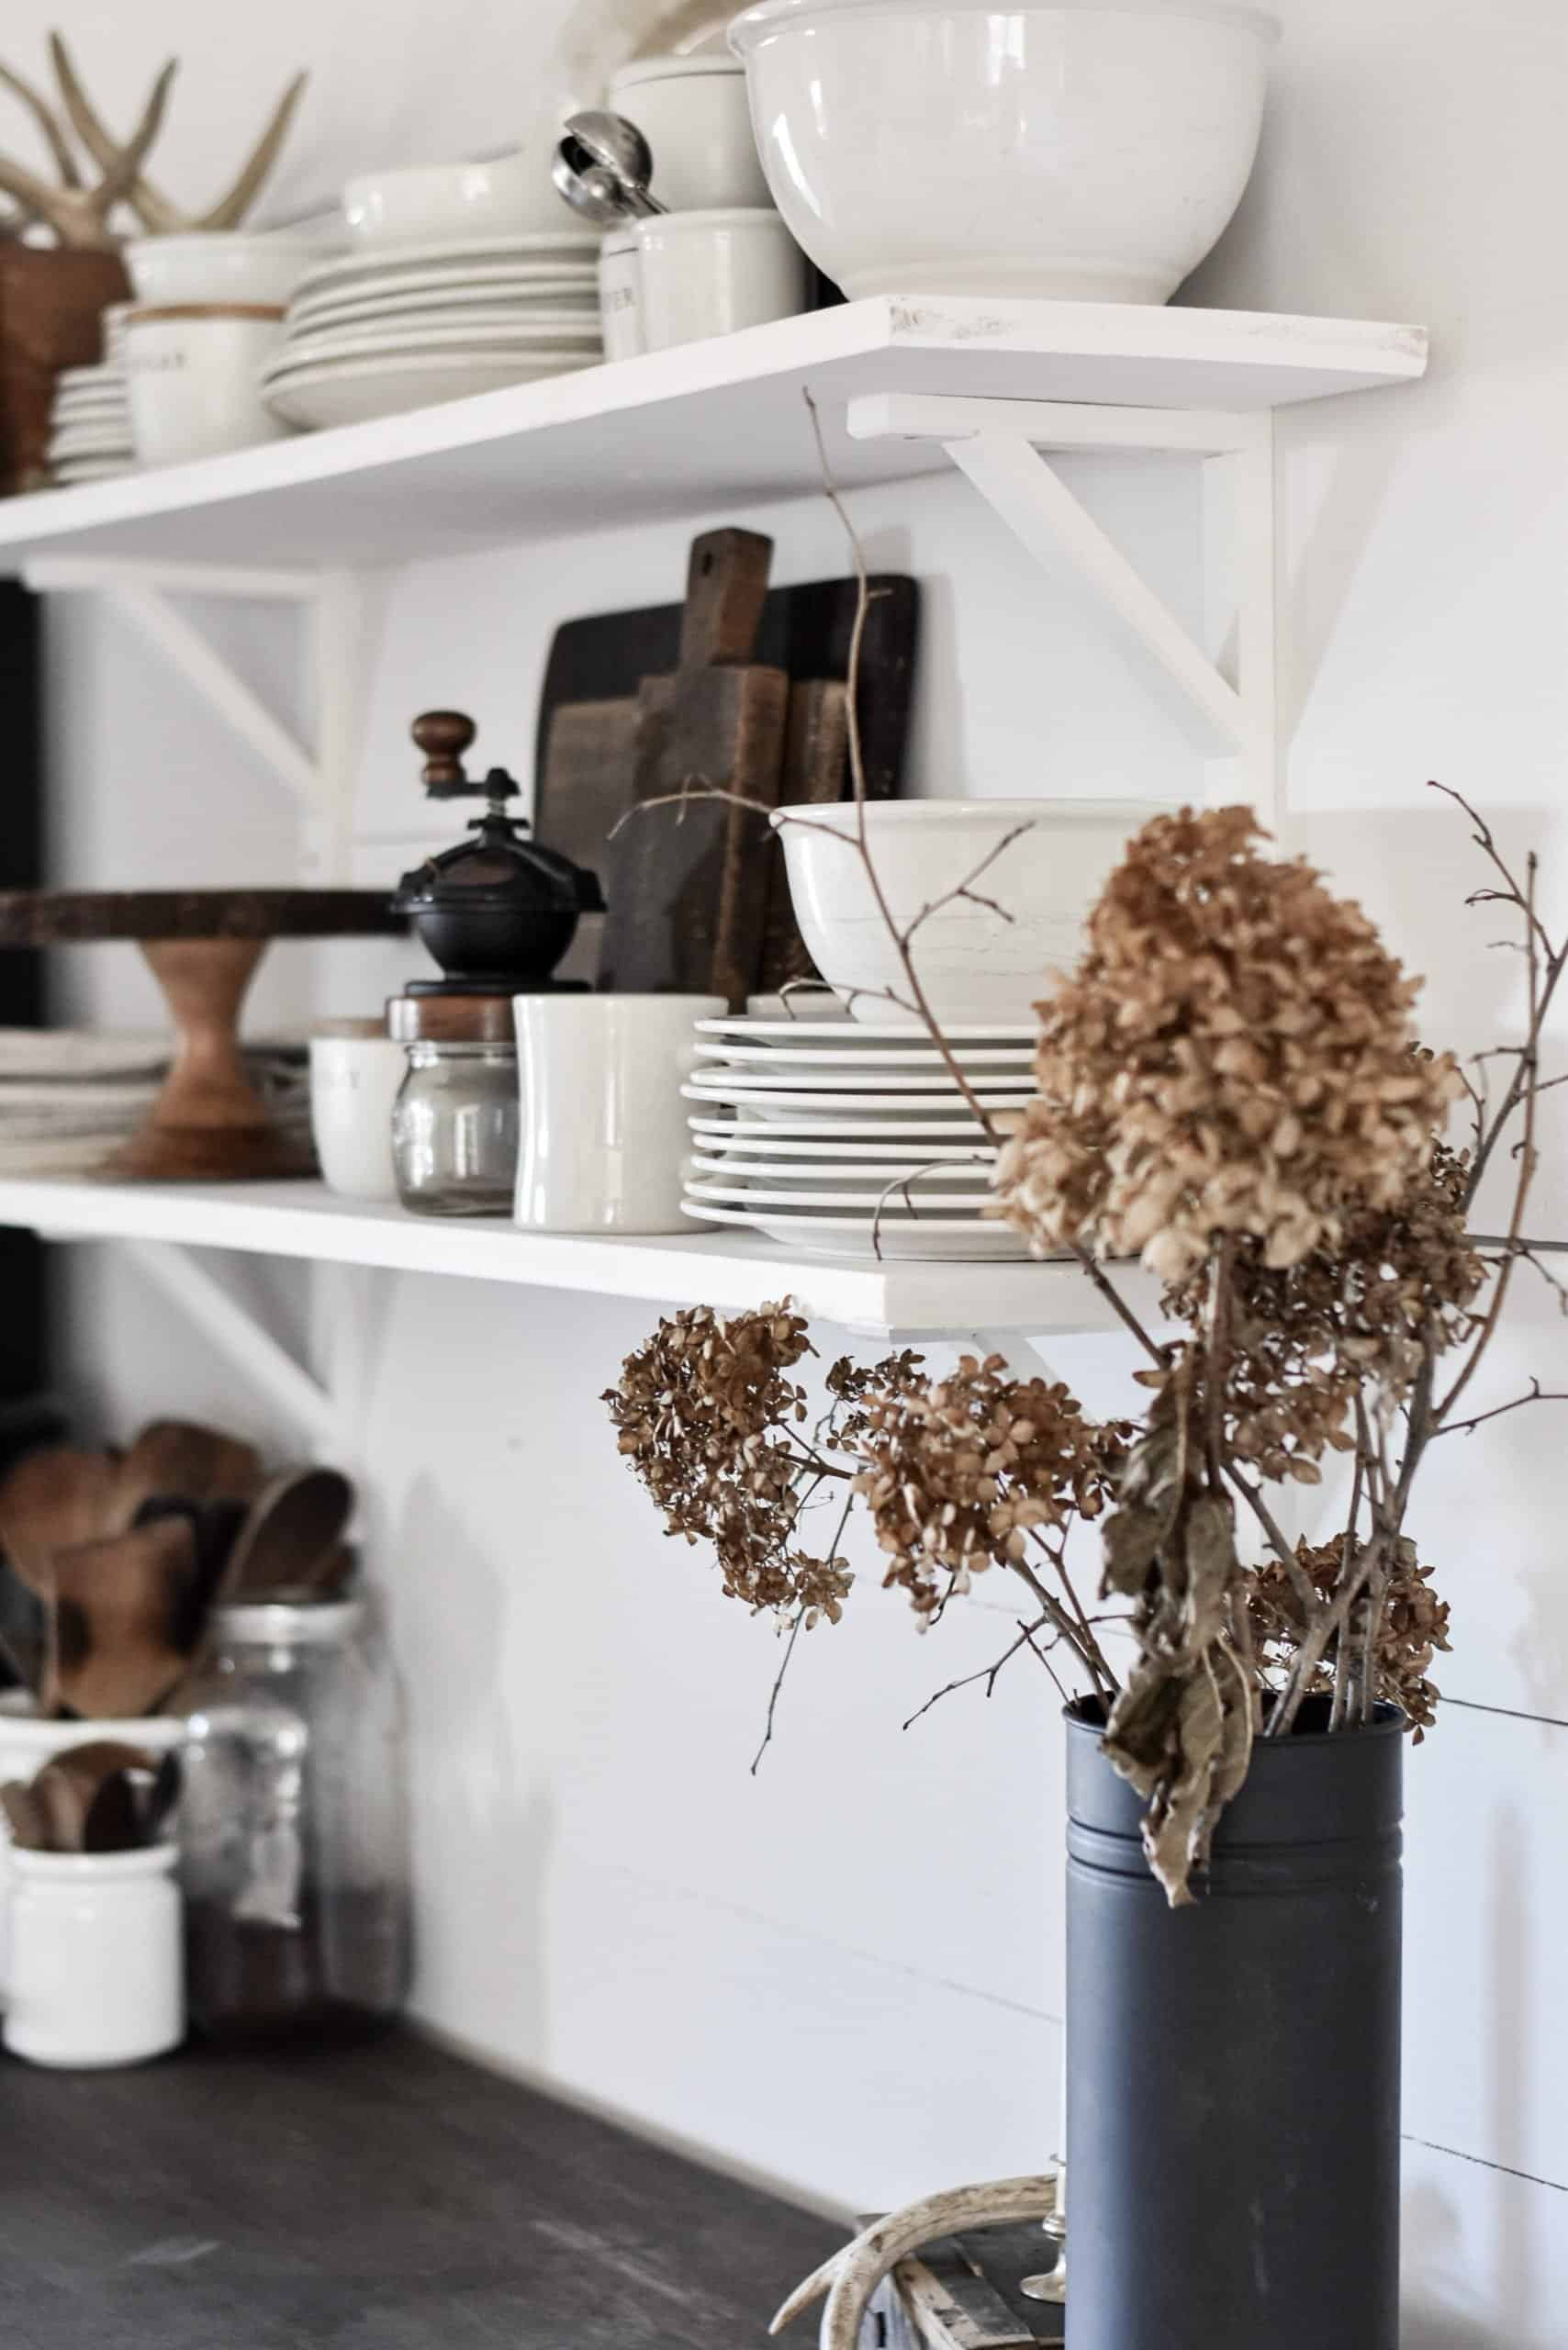 Farmhouse Style Open Kitchen Shelves   How to Style   Simple   Industrial   Wood and White   DIY Open Kitchen Shelving